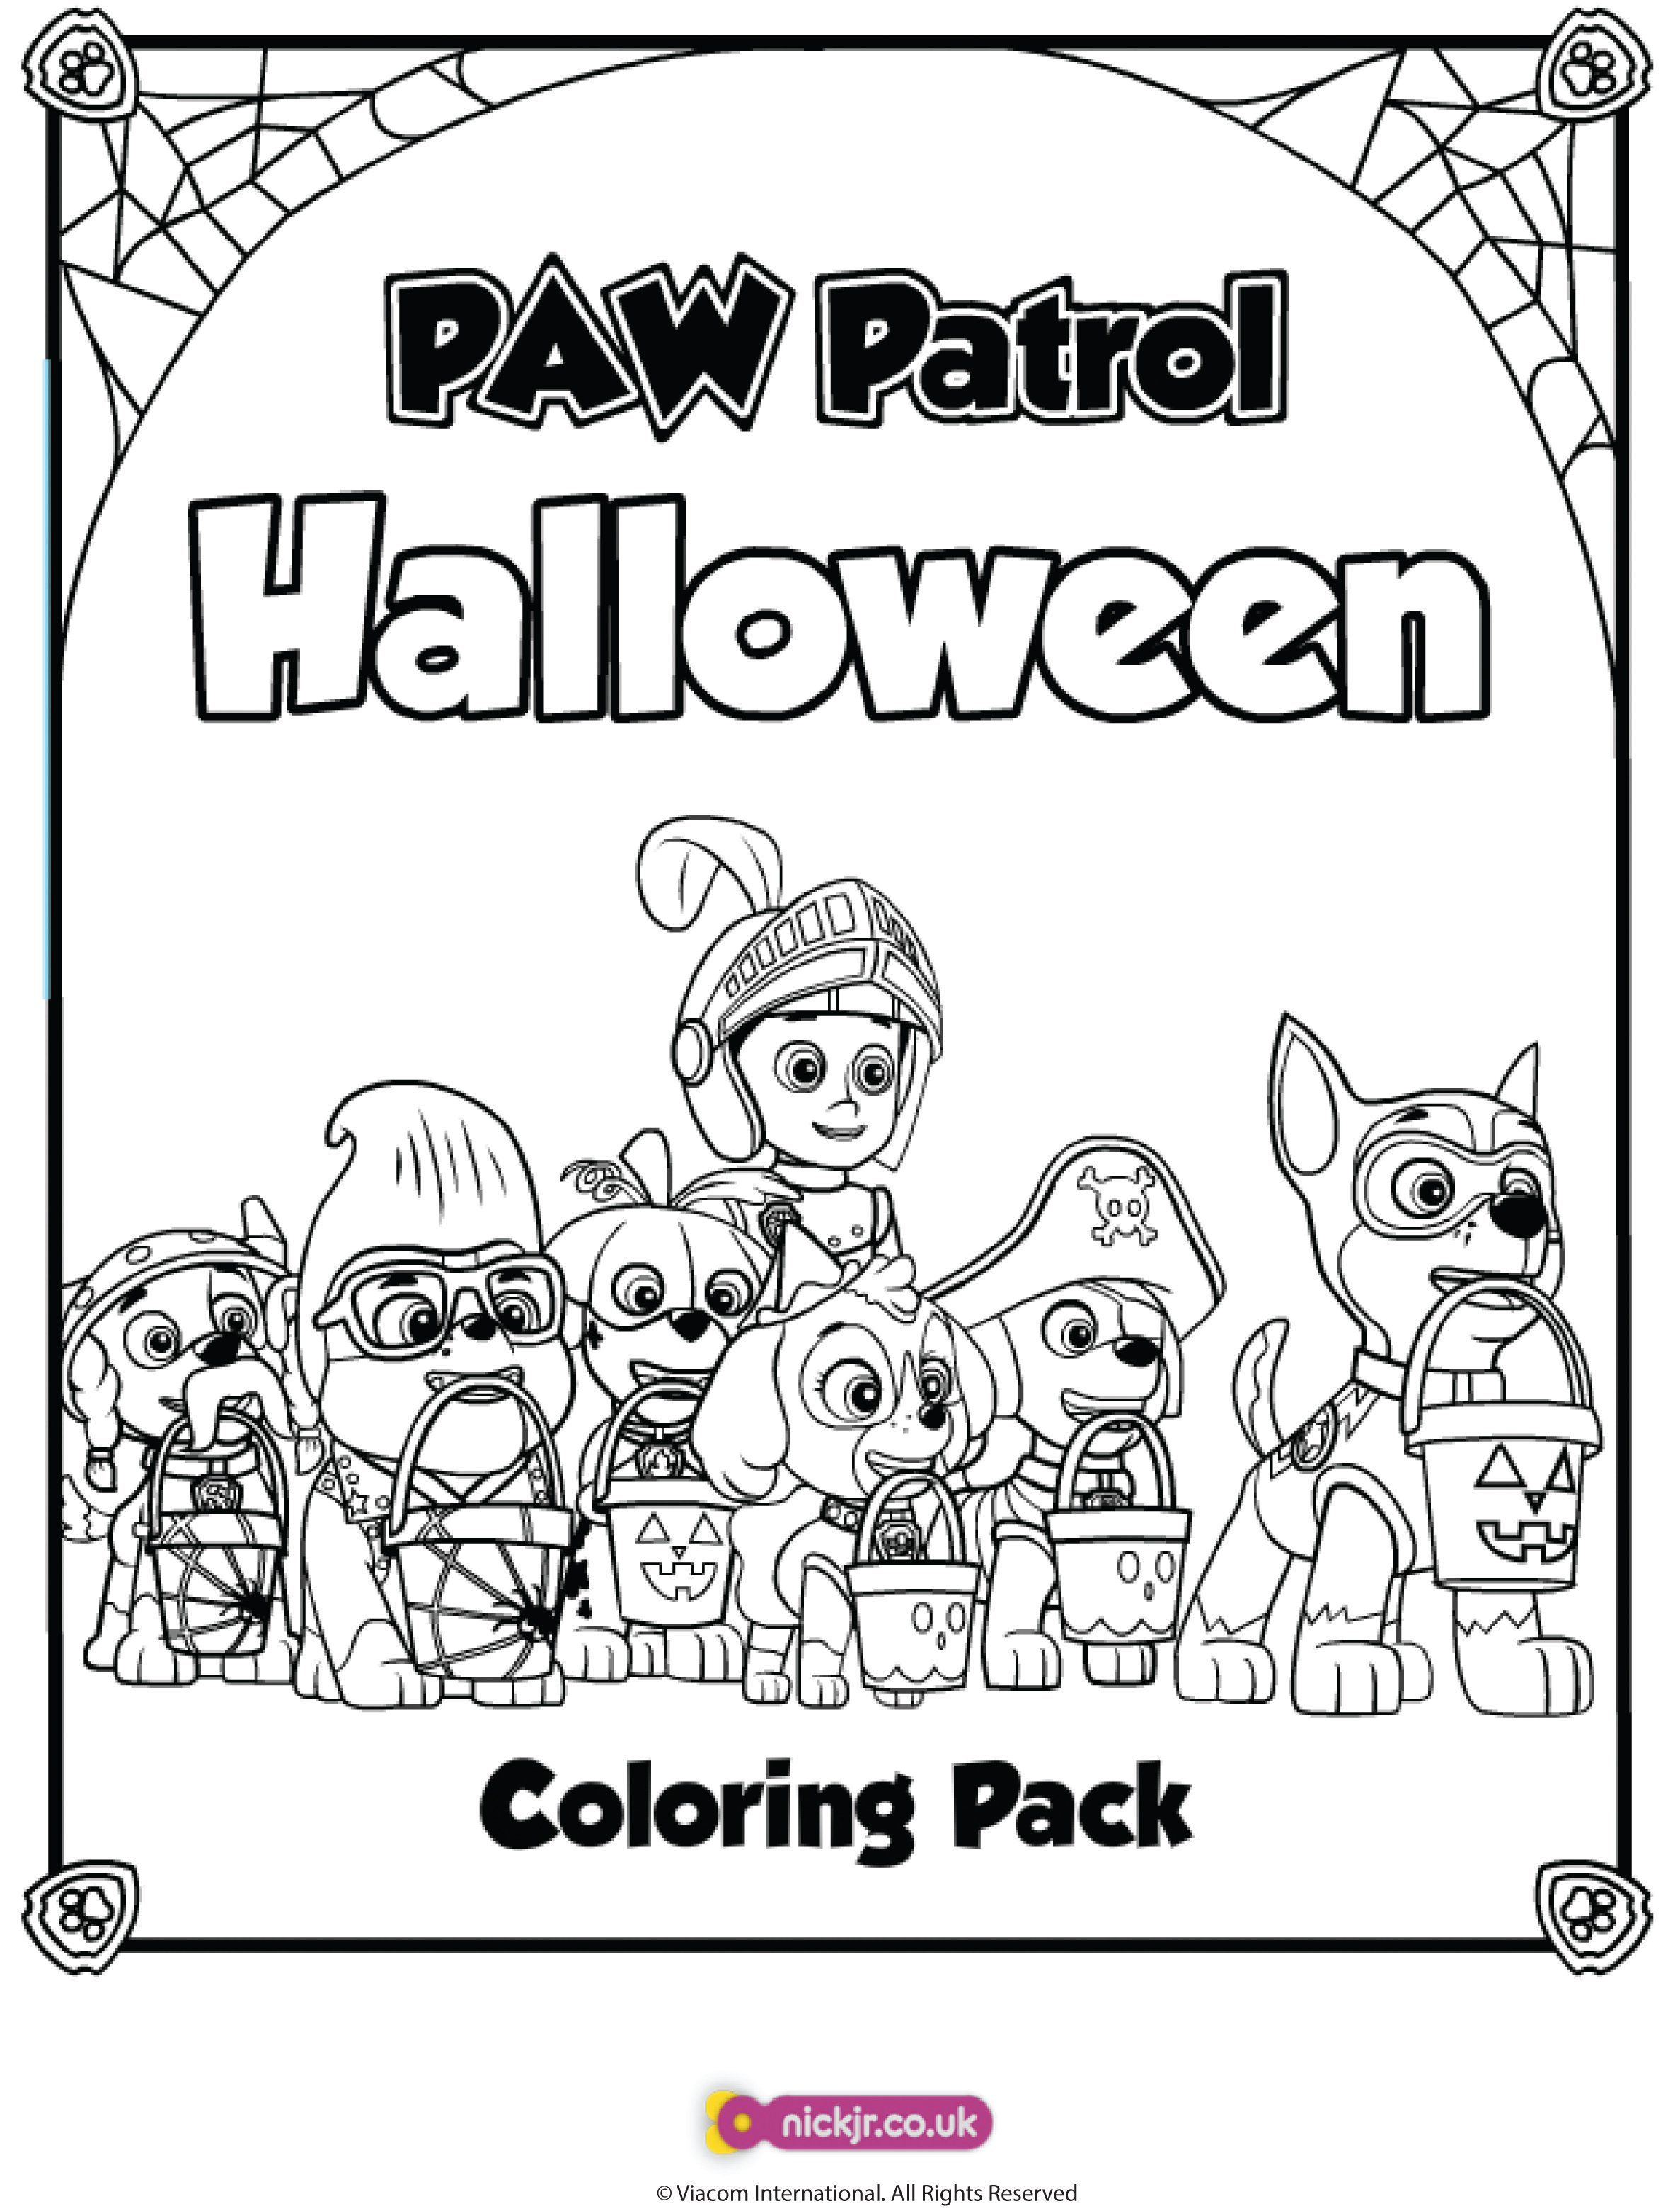 PAW Patrol Halloween Coloring Pages Coloring Pinterest